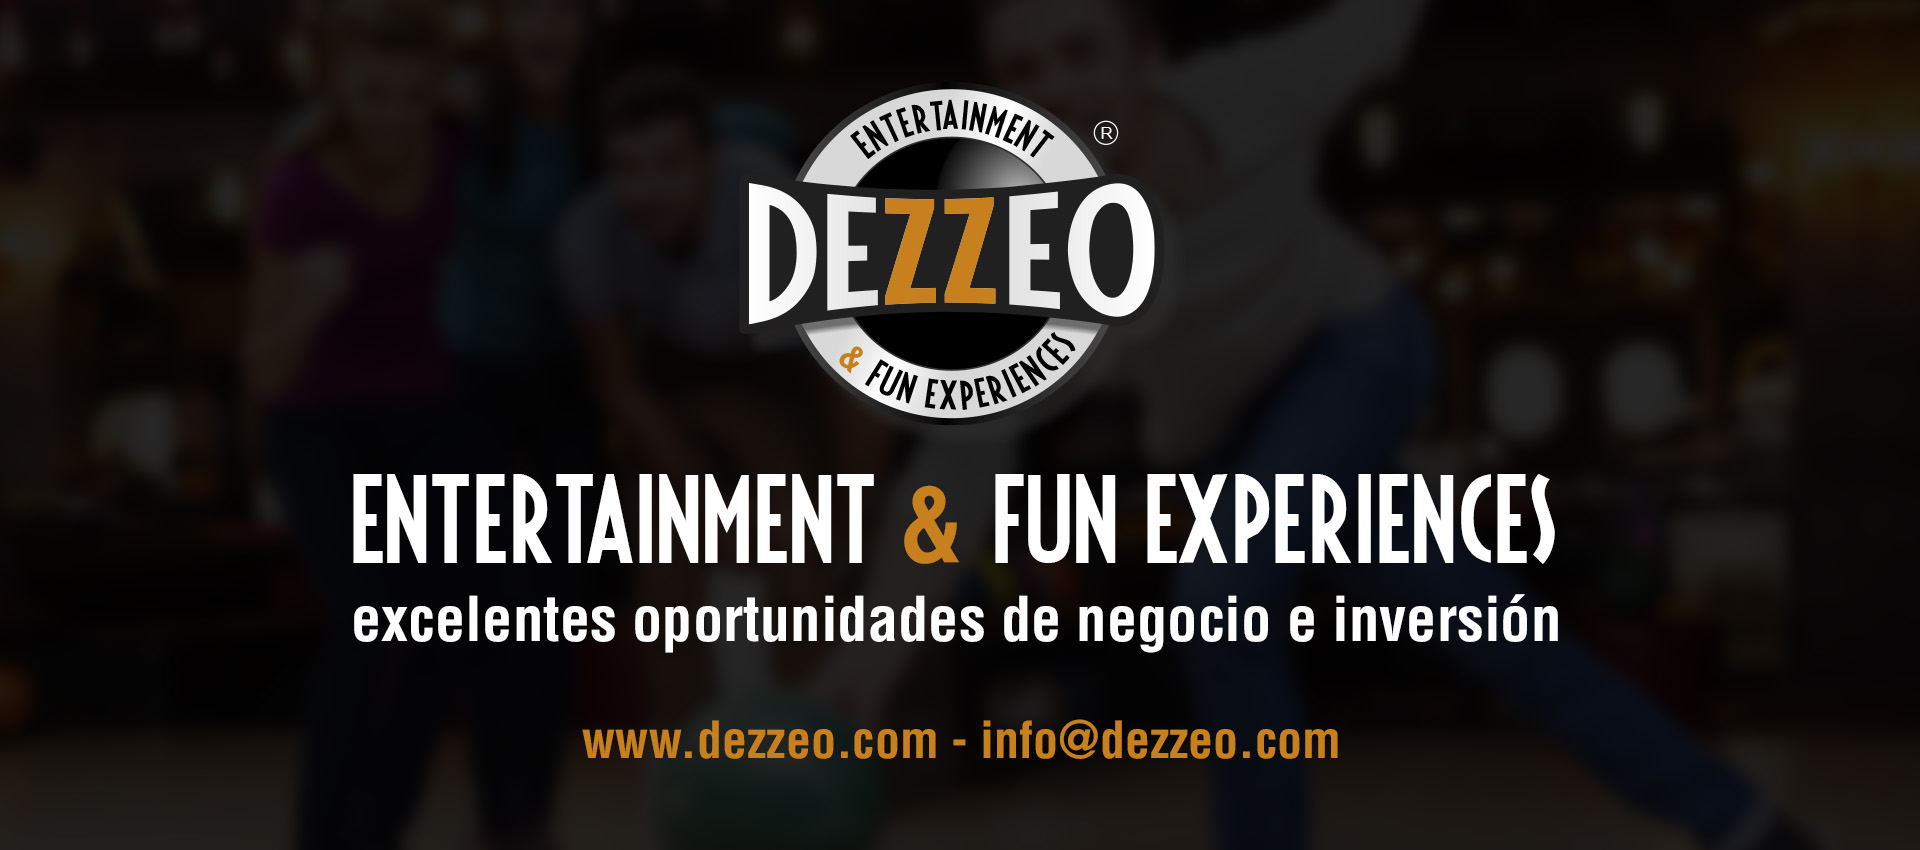 dezzeo-entertainment-and-fun-experiences